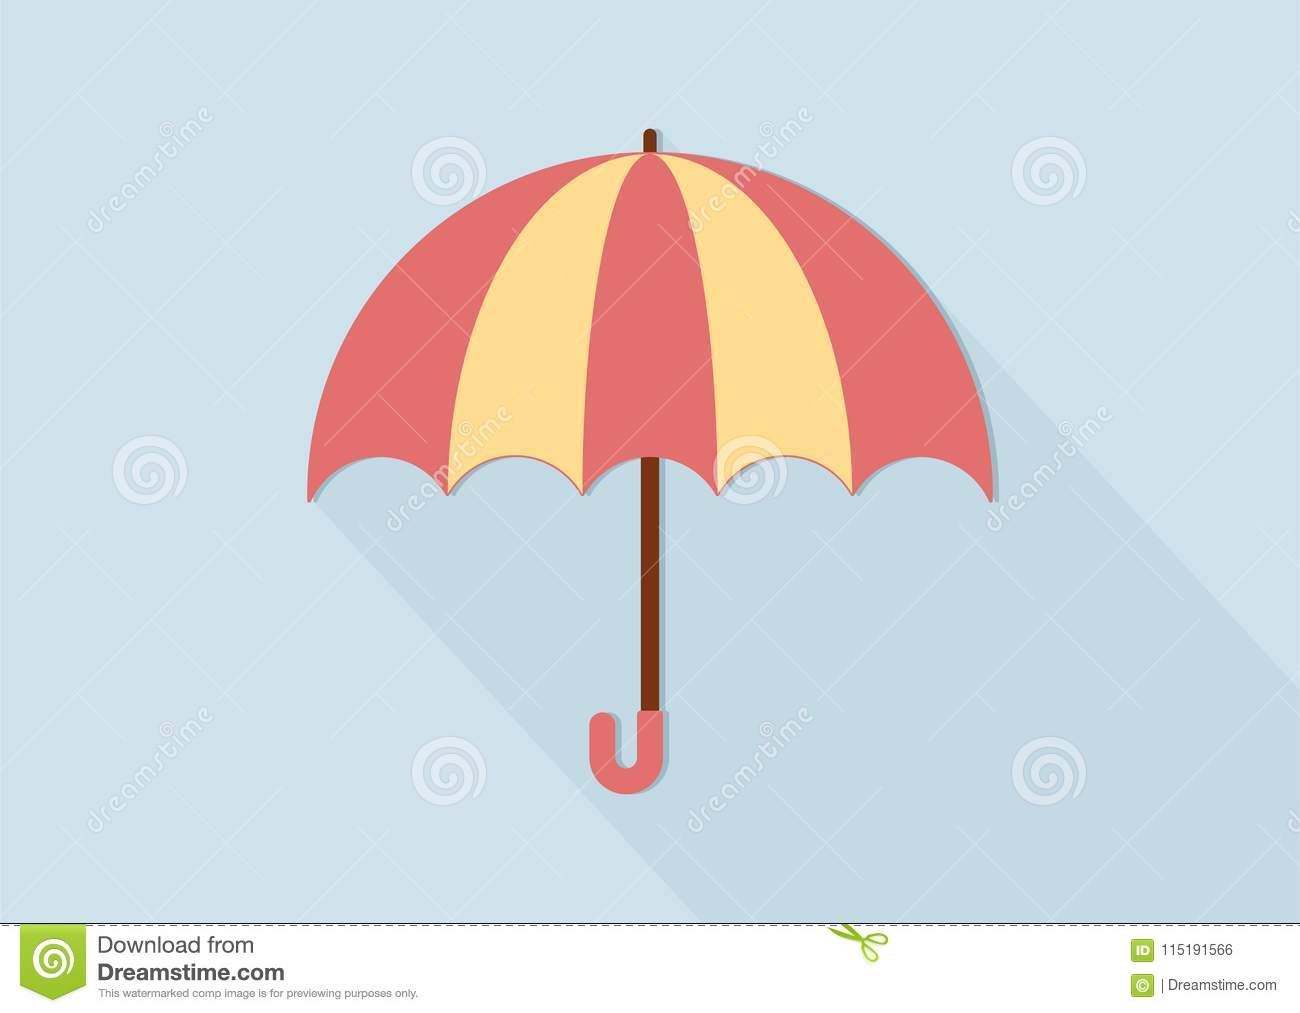 Cute Pink And Yellow Umbrella Clipart Stock Vector.